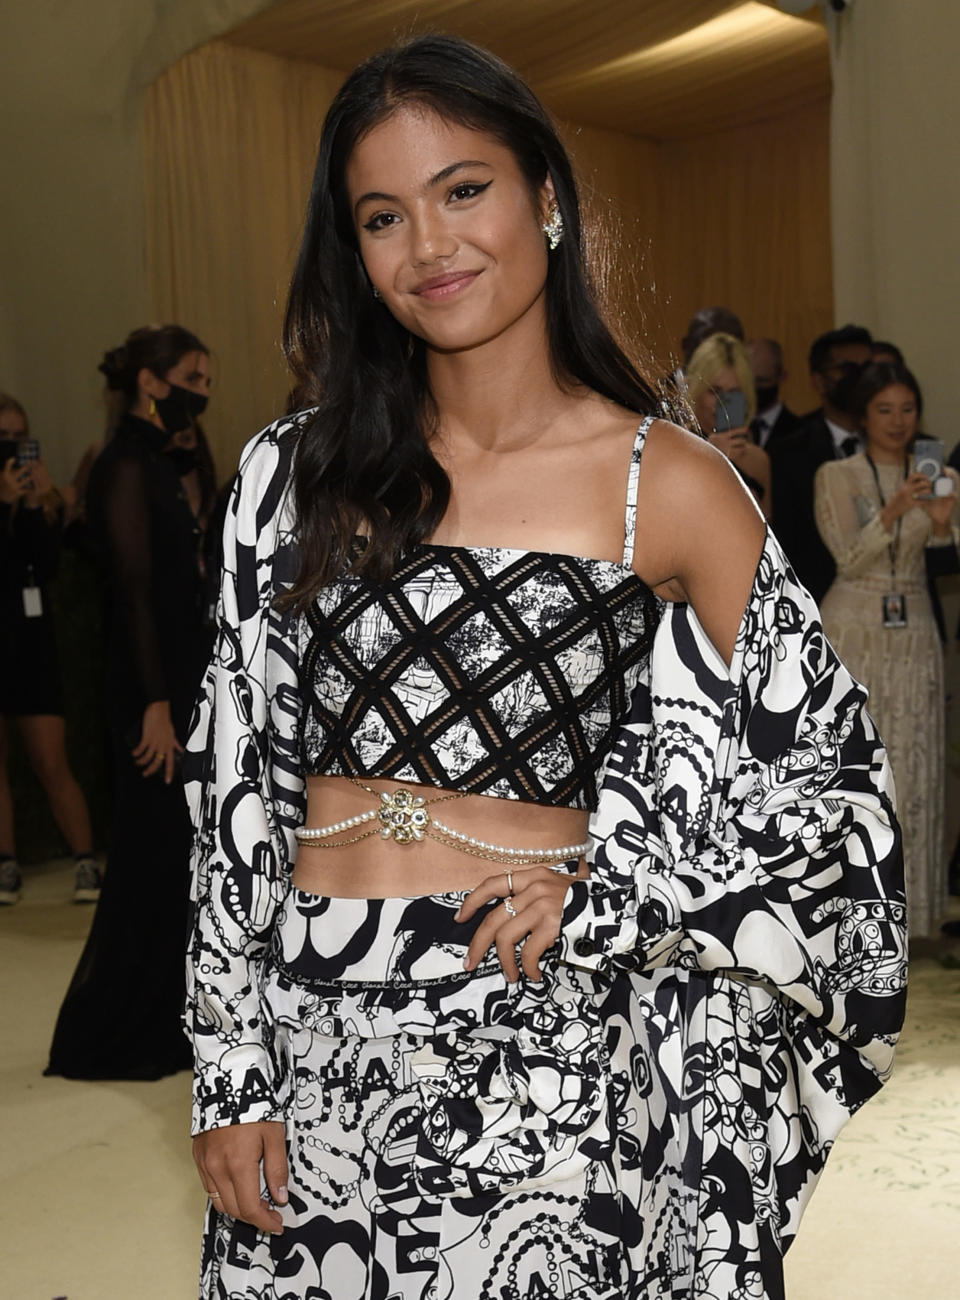 """Emma Raducanu attends The Metropolitan Museum of Art's Costume Institute benefit gala celebrating the opening of the """"In America: A Lexicon of Fashion"""" exhibition on Monday, Sept. 13, 2021, in New York. (Photo by Evan Agostini/Invision/AP)"""